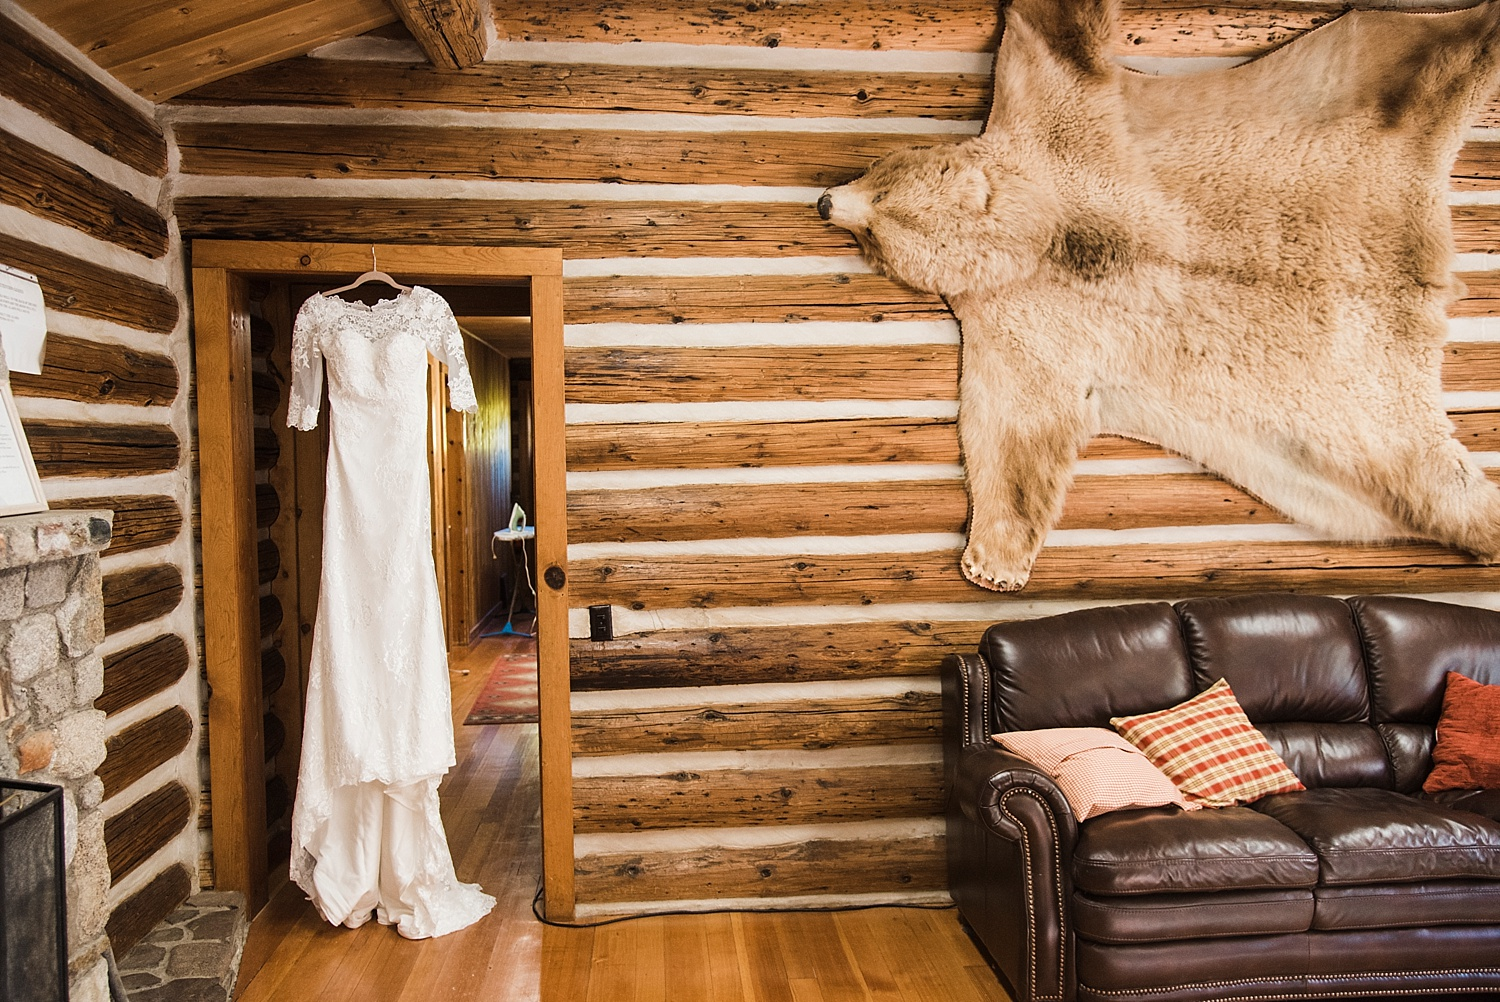 Buena_Vista_Destination_Wedding_Photographer_Apollo_Fields_Colorado_0001.jpg